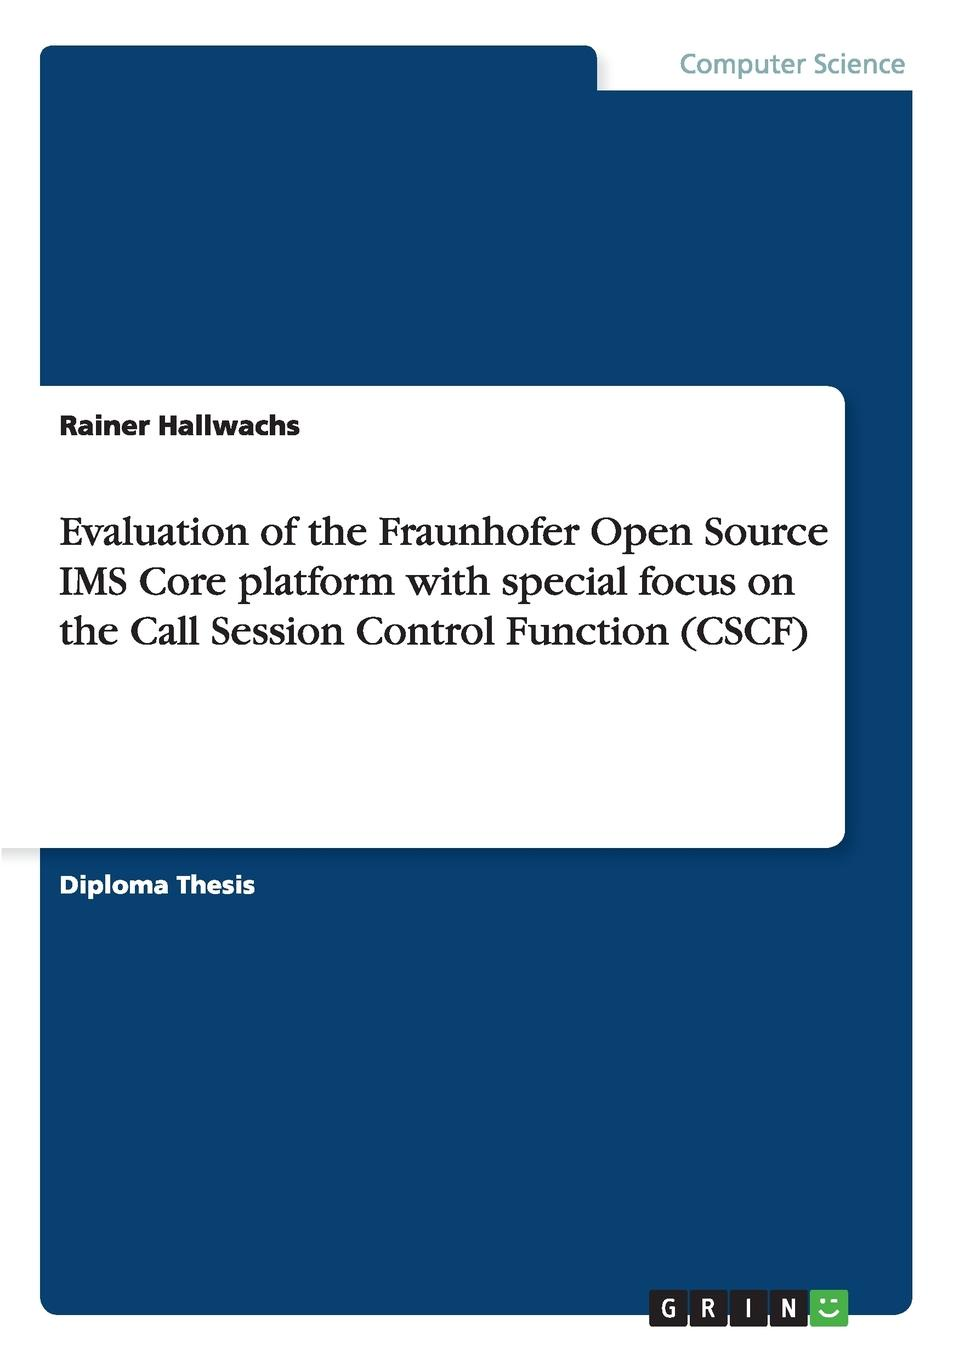 Rainer Hallwachs Evaluation of the Fraunhofer Open Source IMS Core platform with special focus on the Call Session Control Function (CSCF) escam with alarm function 433mhz wireless motion detection ip camera